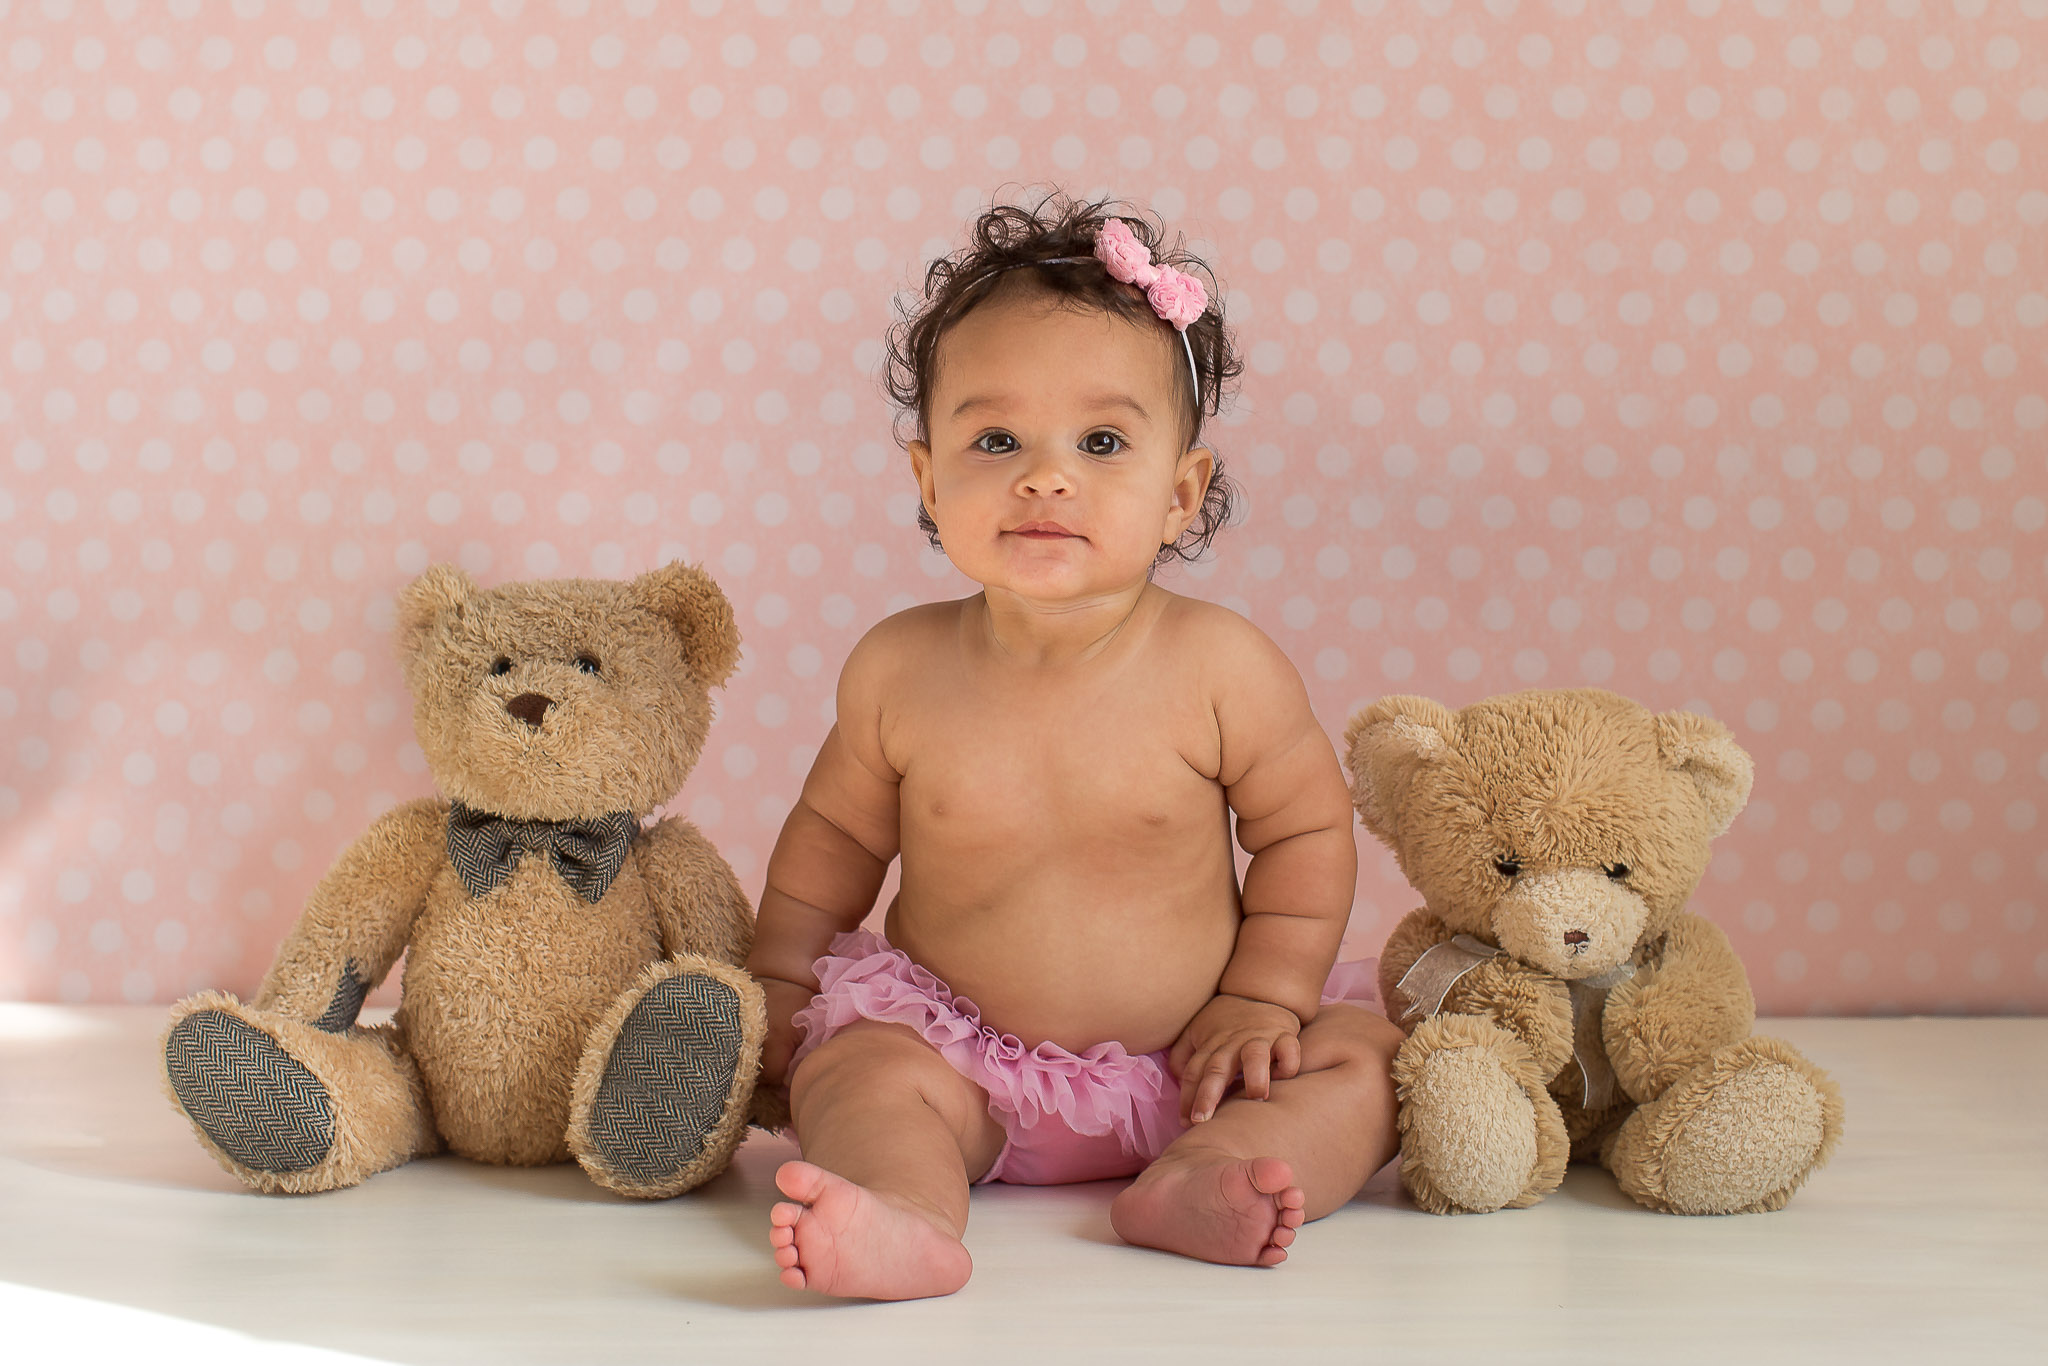 6-month-girl-pink-tutu-teddy-bears.jpg